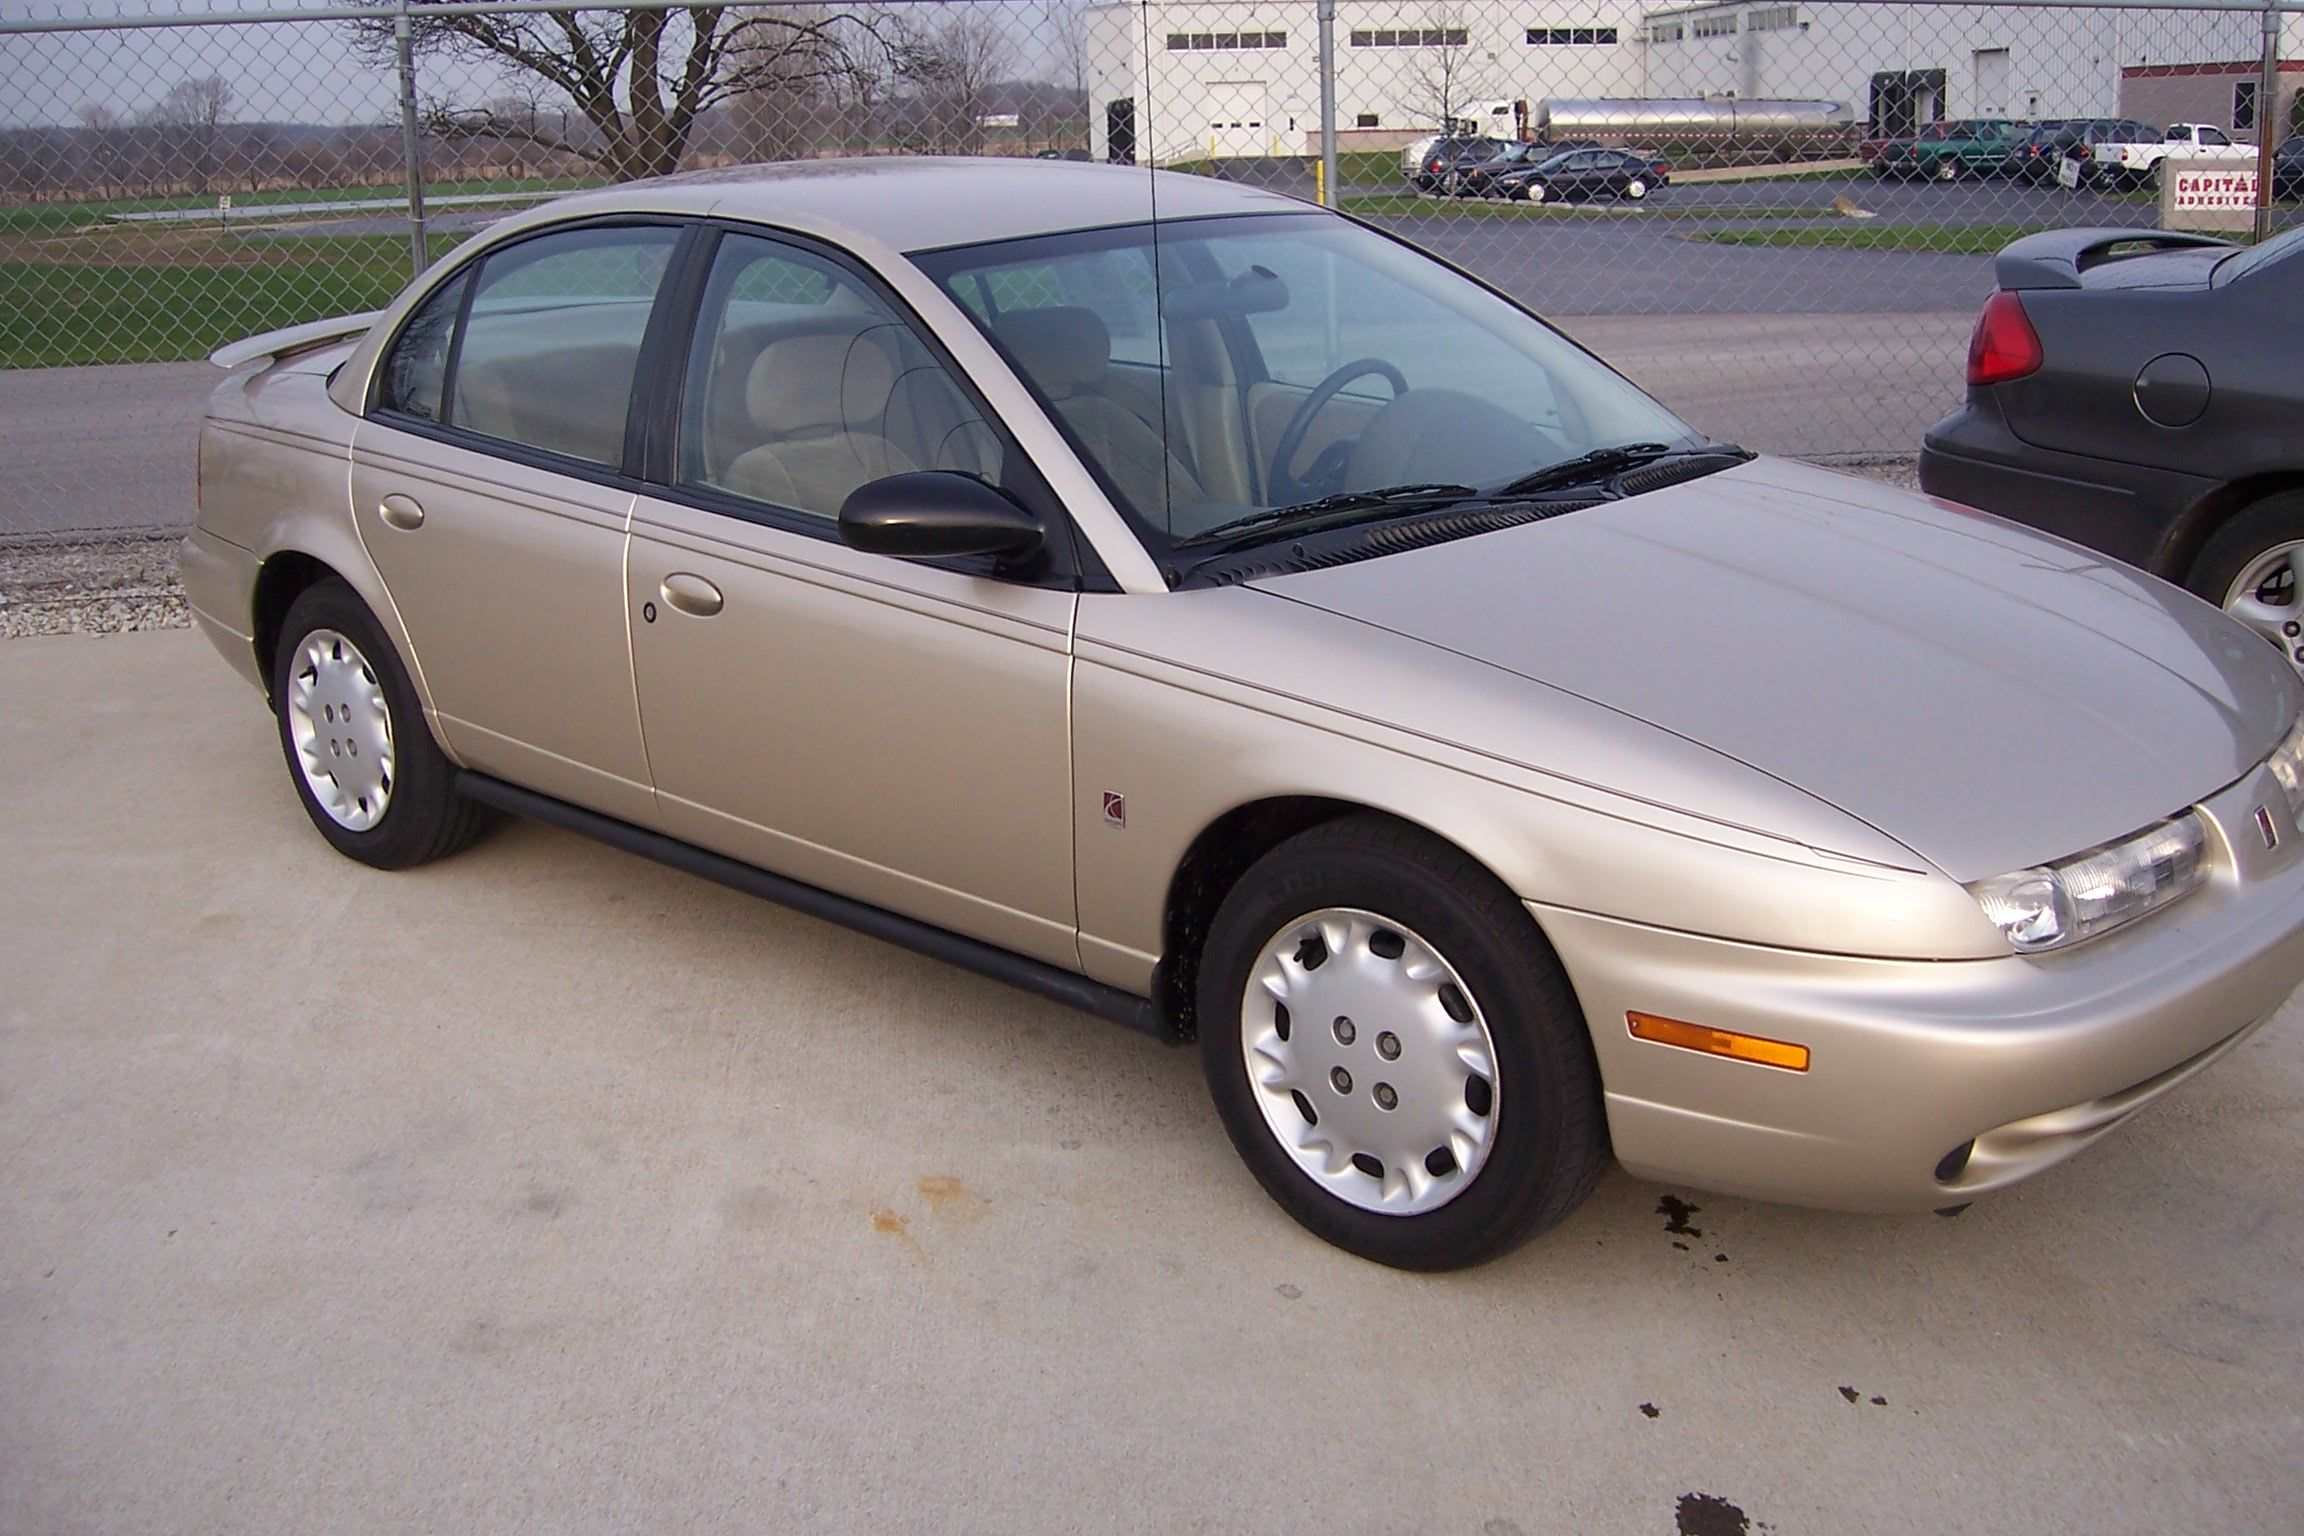 Looks Like My 1997 Saturn Sl2 Except Mine Did Not Have A Luggage Transmission Lawsuit About Rack On The Trunk